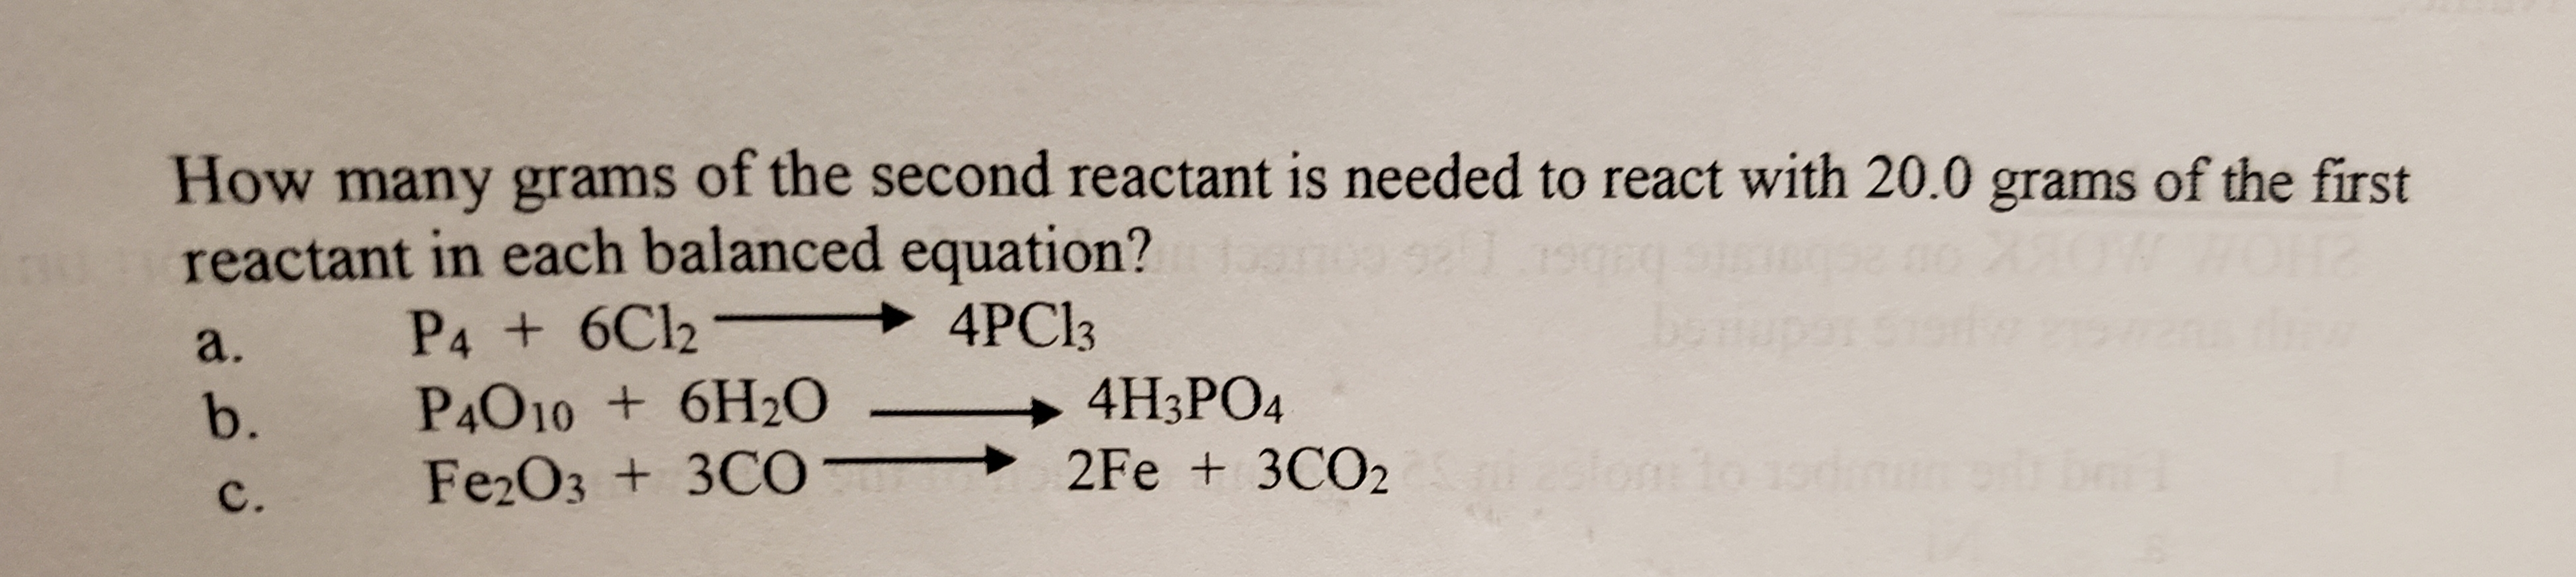 How many grams of the second reactant is needed to react with 20.0 grams of the first reactant in each balanced equation? a. P4+6C12 + 4PC13 Fe203 + 3CO 2Fe + 3C02 C.